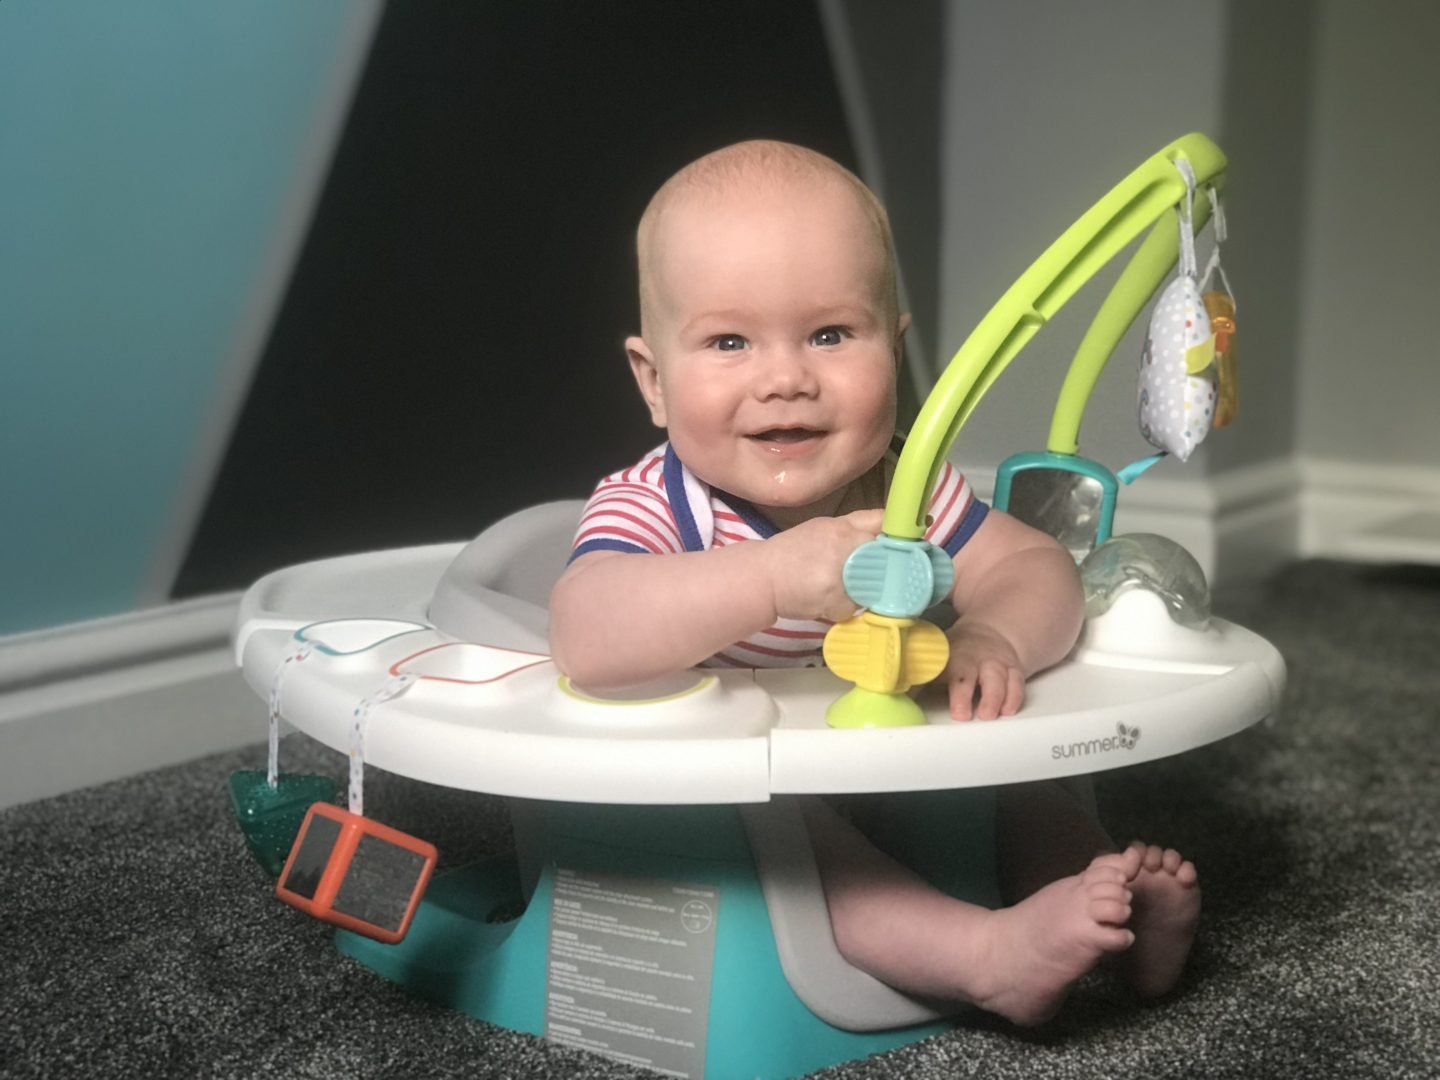 Felix in his Summer Delux 4 in 1 Superseat looking at camera smiling